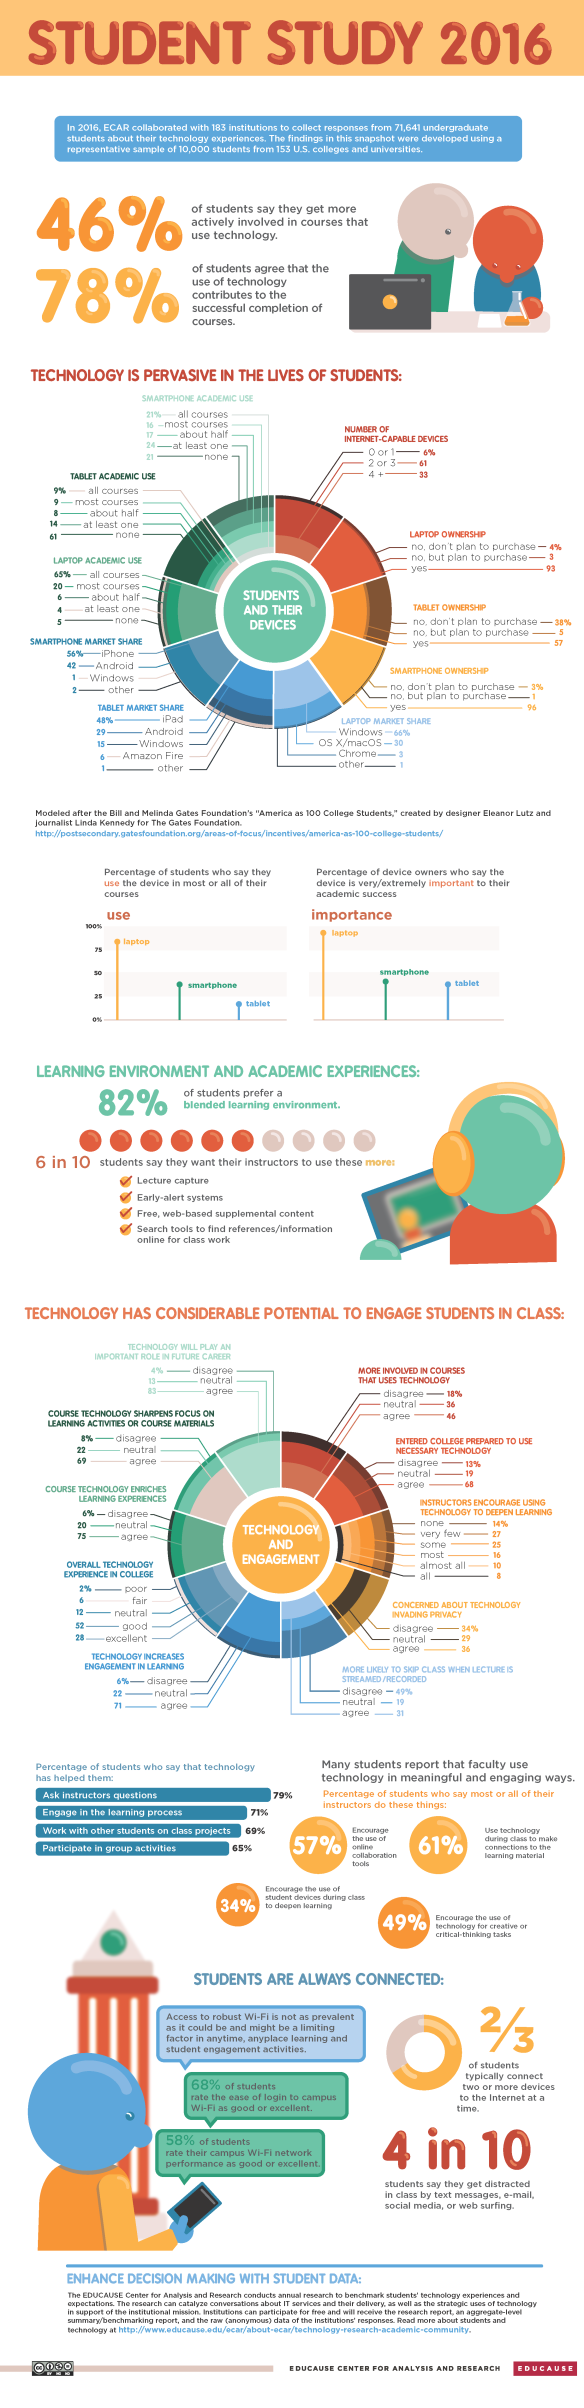 2016-technology-infographic